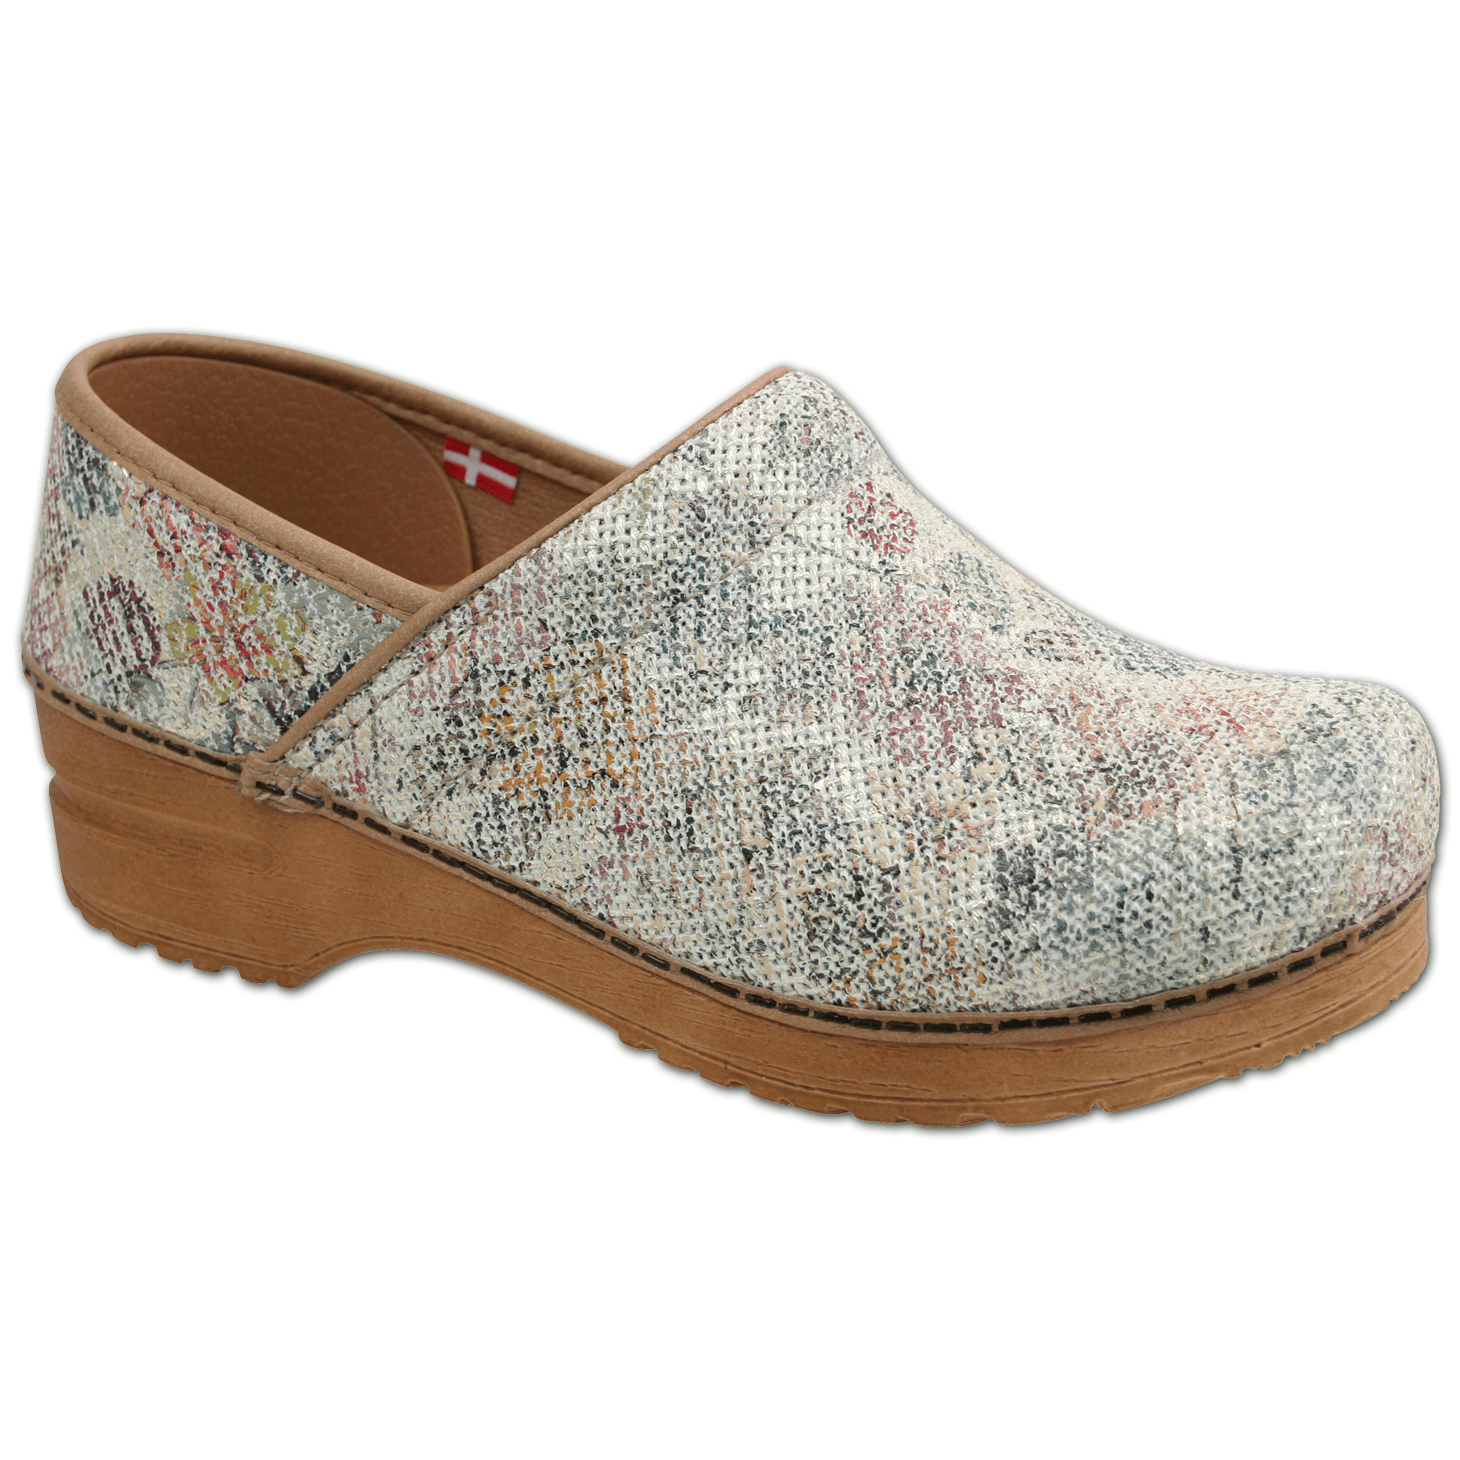 Sanita Palermo Women's Closed Back Clog